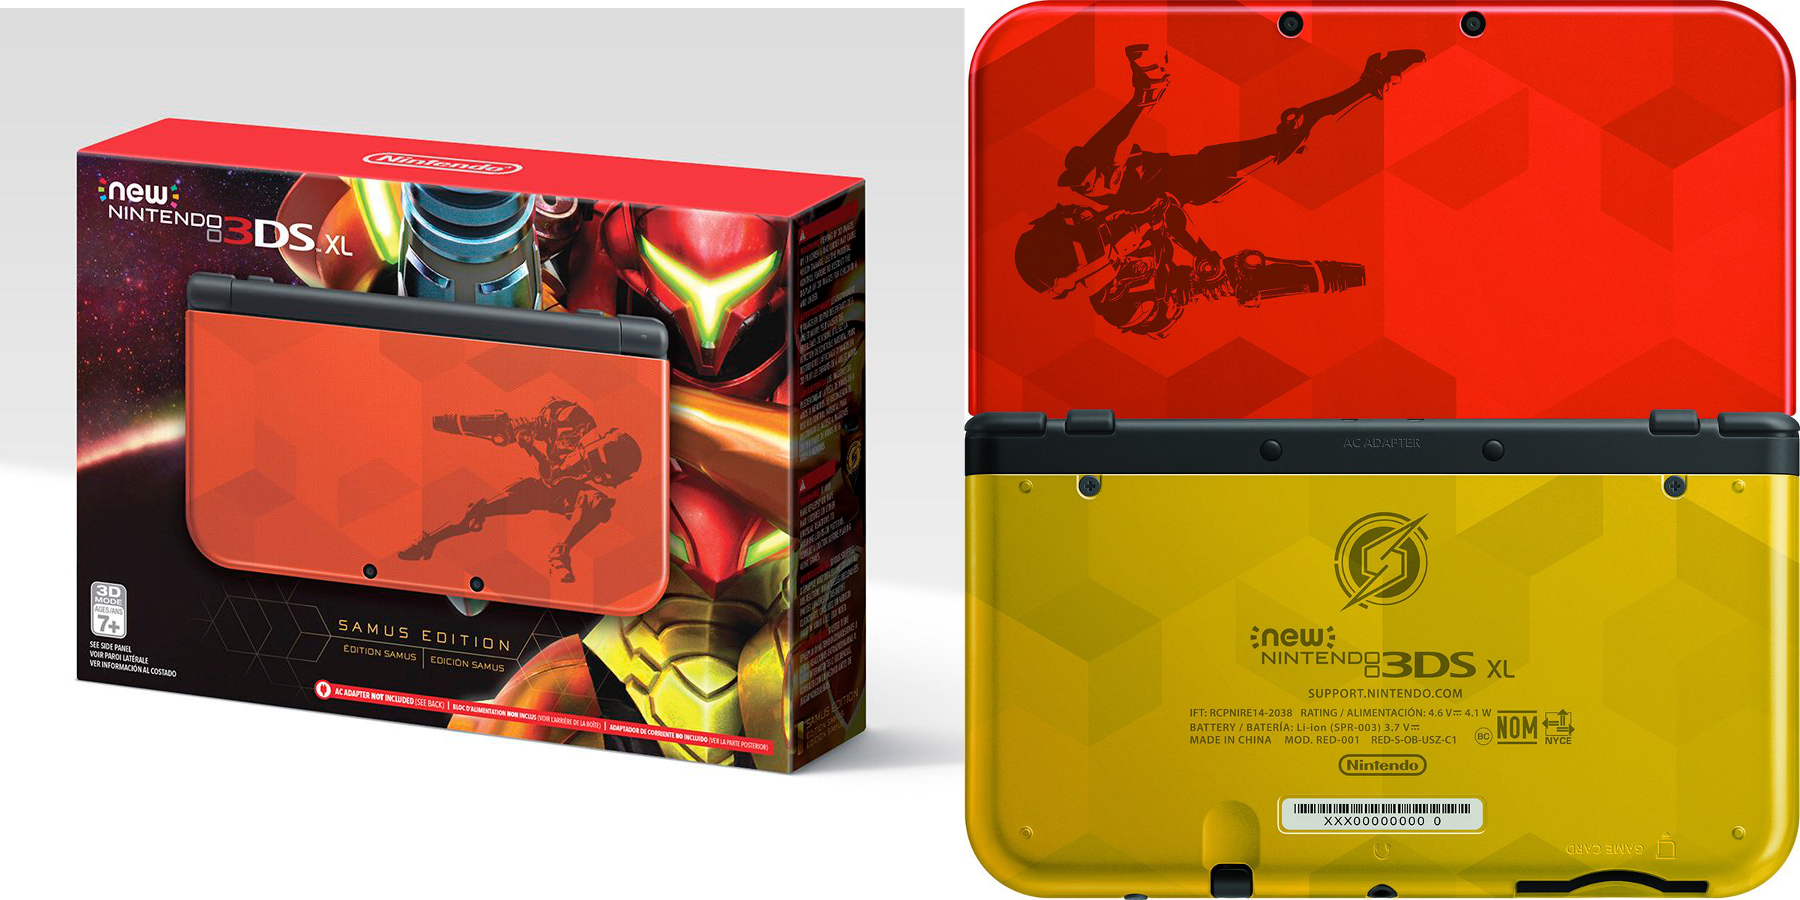 new 3ds xl - samus edition